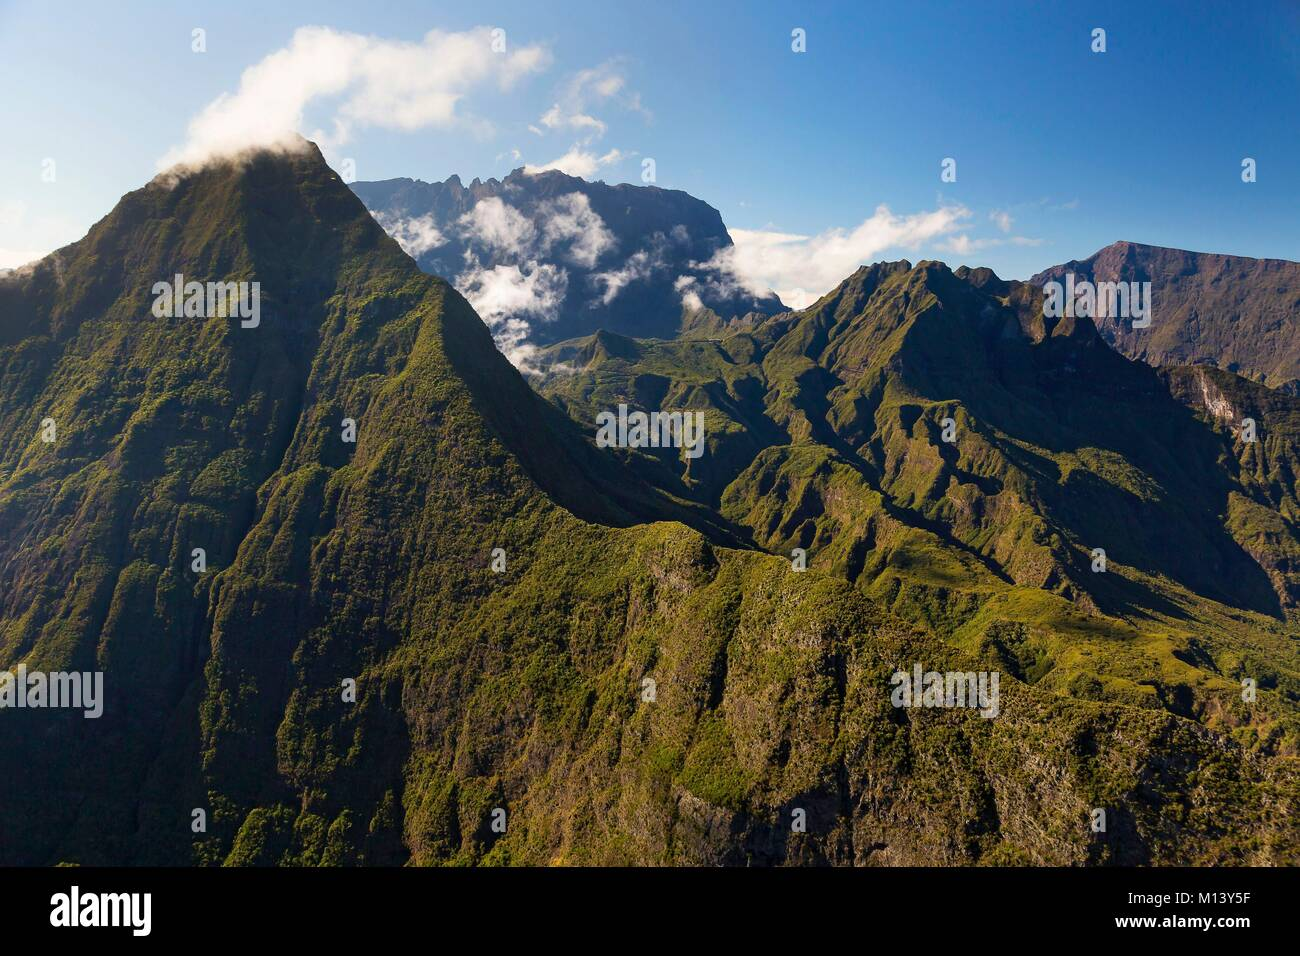 France, Reunion island, Reunion National Park listed as World Heritage by UNESCO, Piton des Neiges (aerial view) - Stock Image